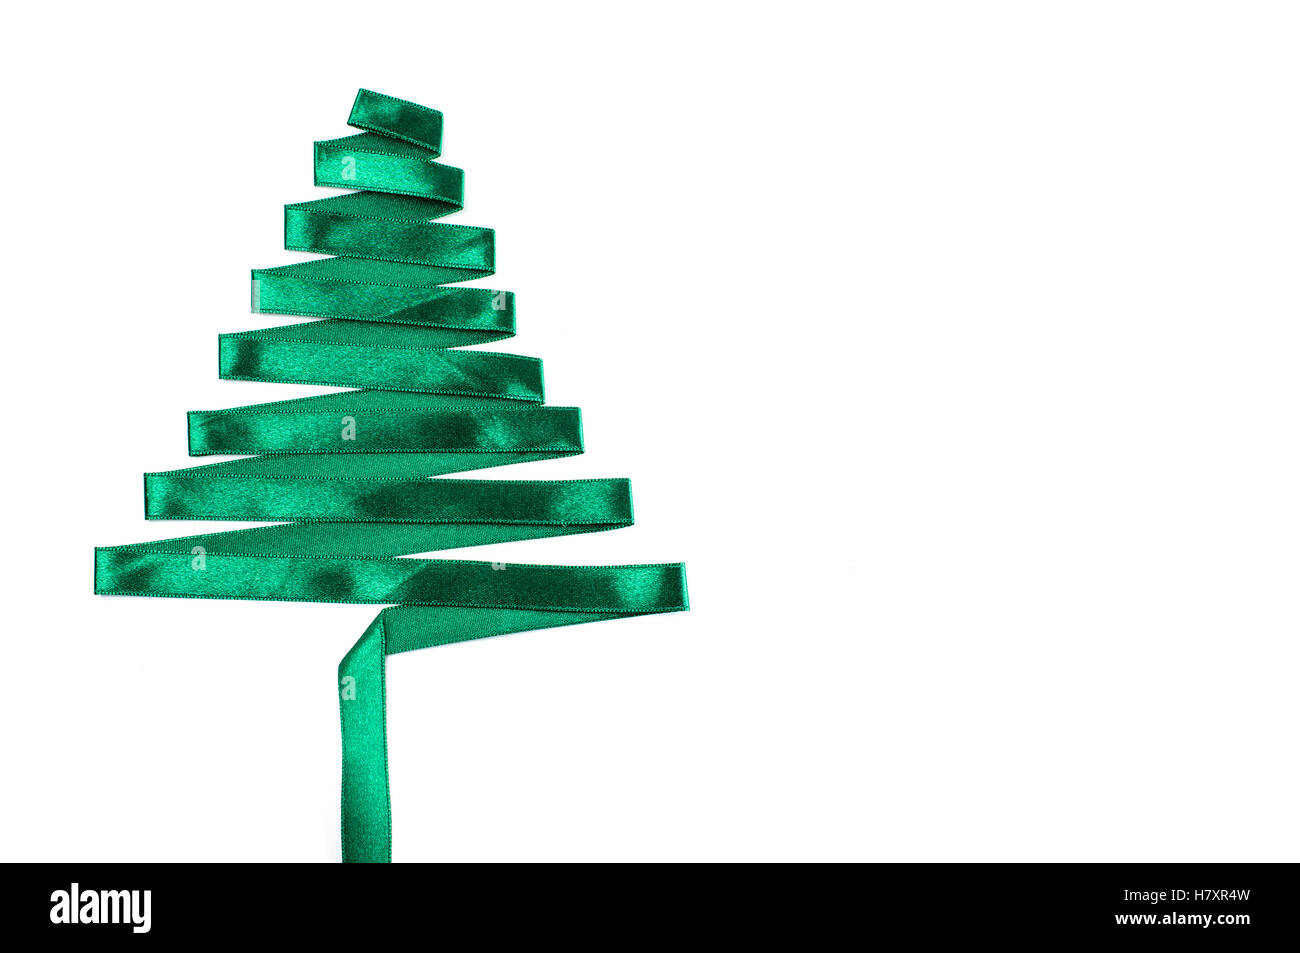 Tree Line Cut Out Stock Images & Pictures - Alamy